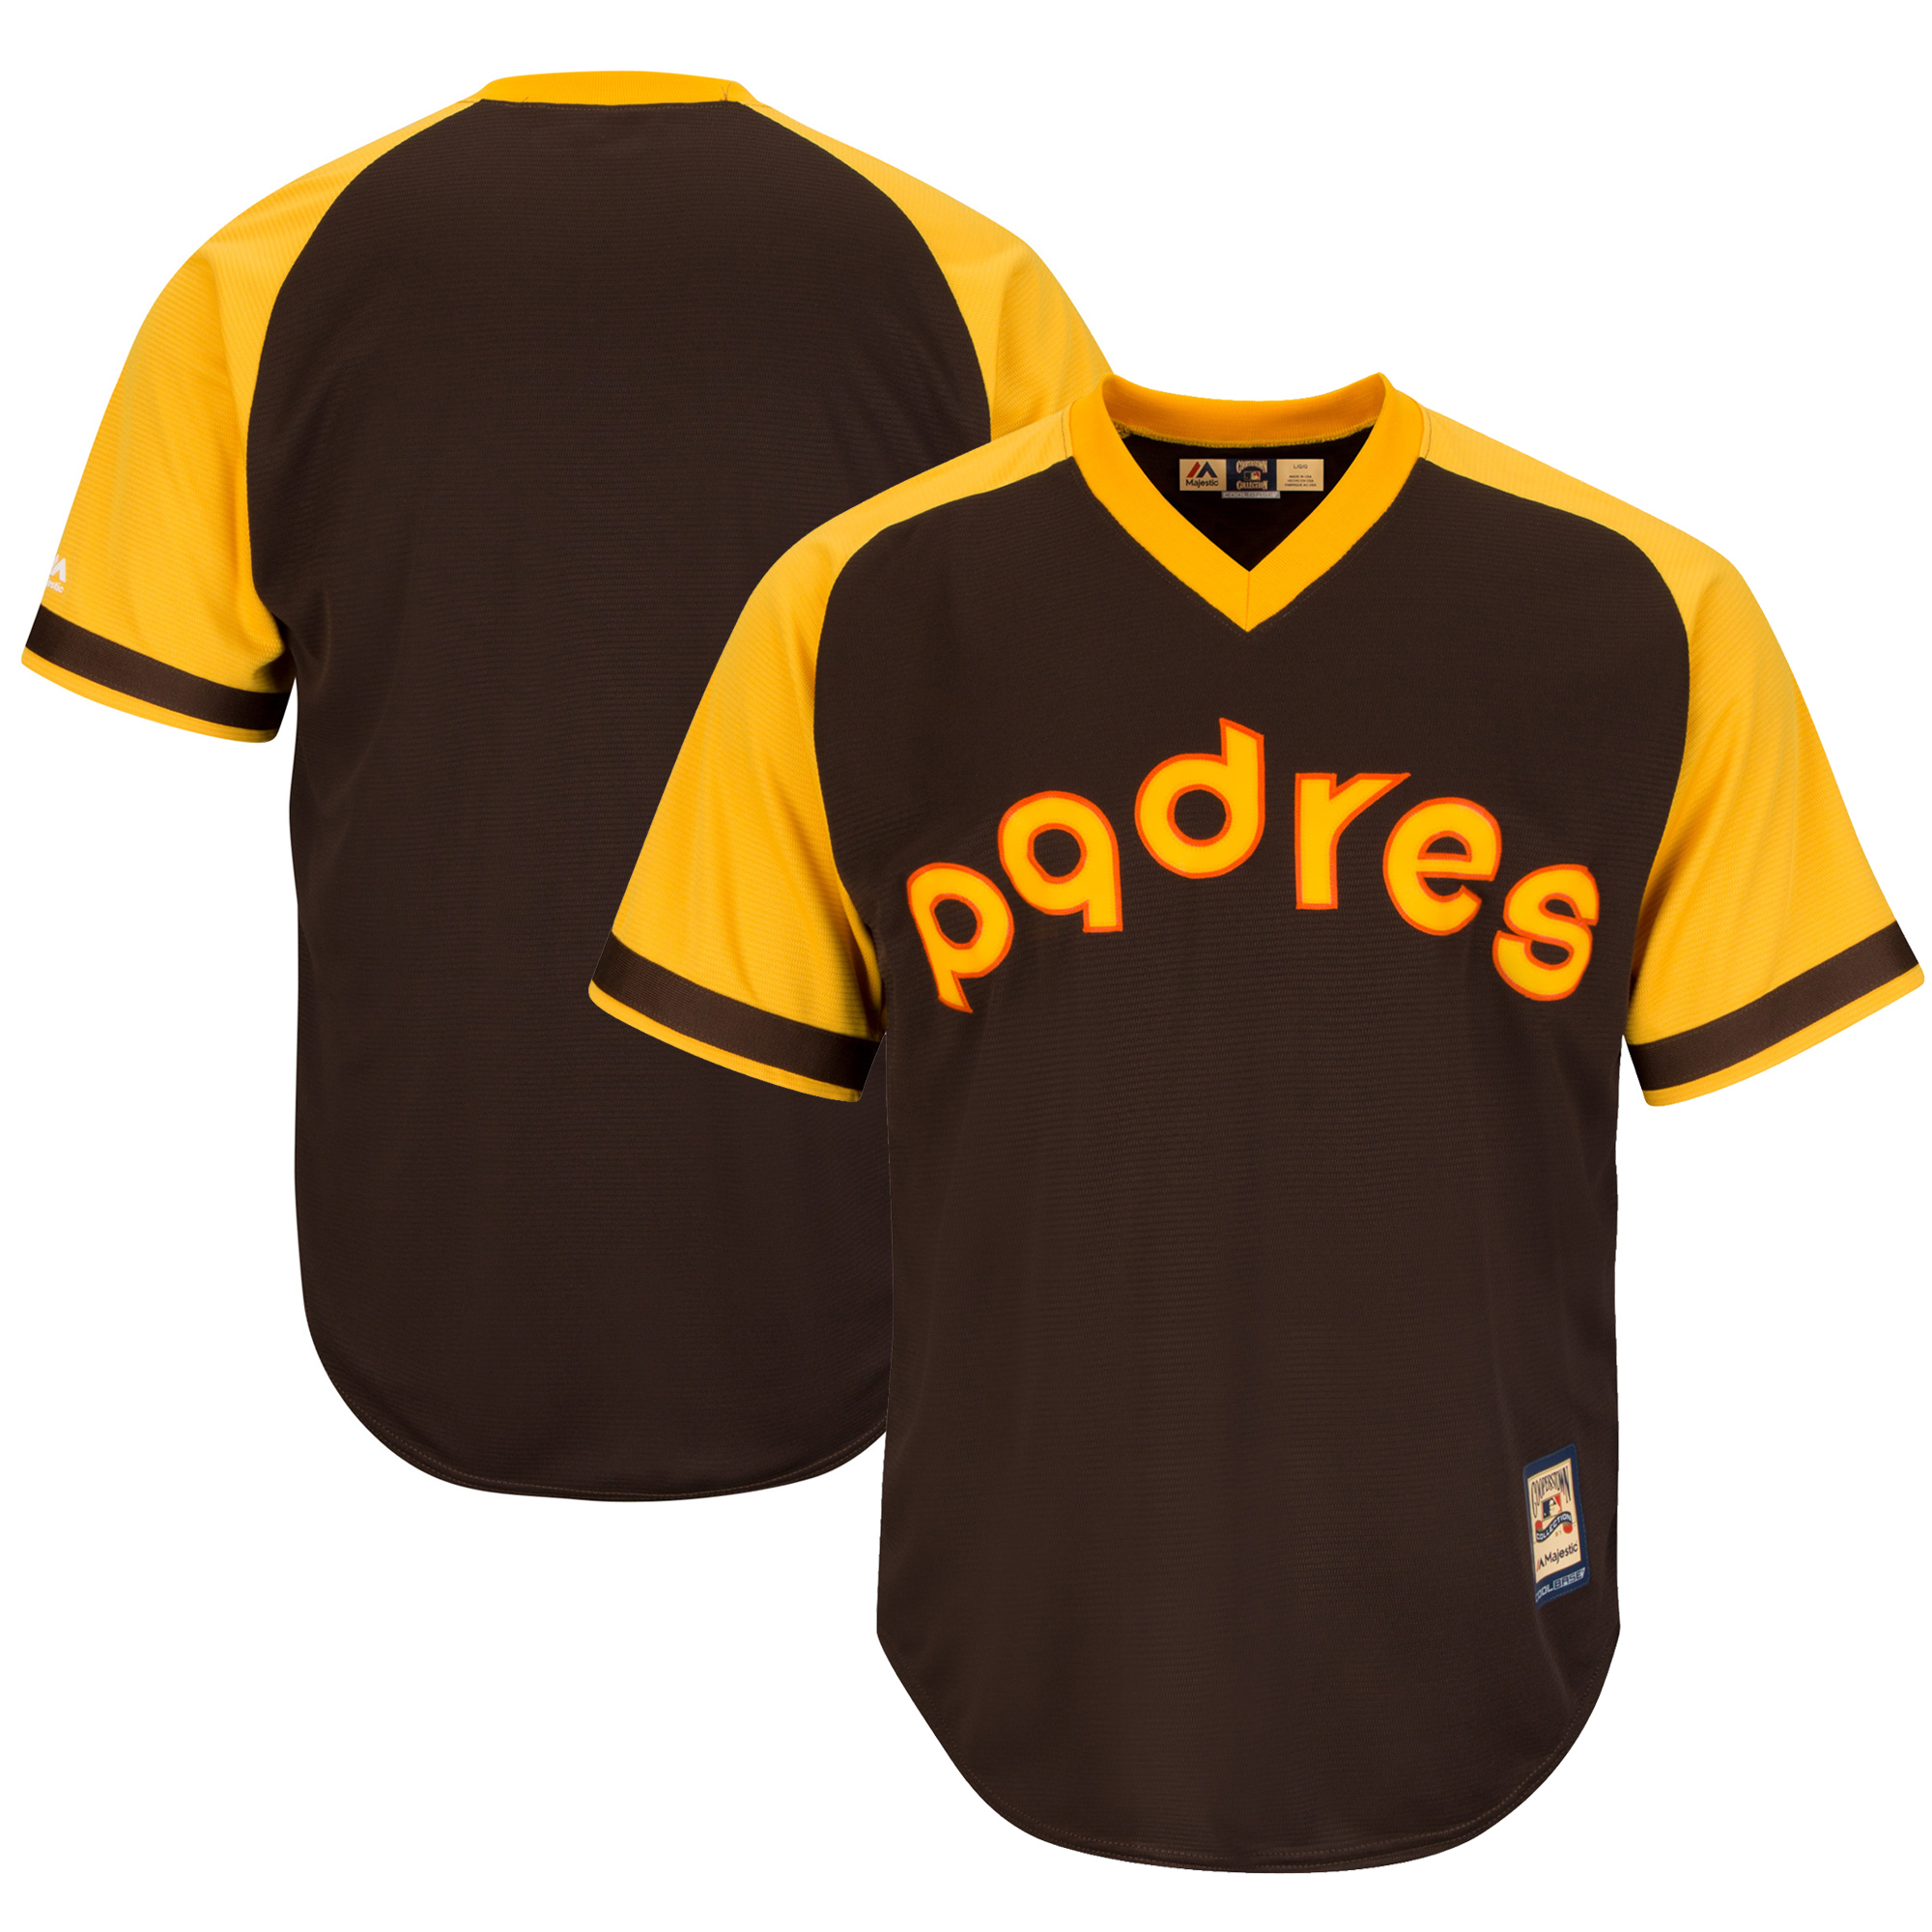 San Diego Padres Majestic Cooperstown Cool Base Team Jersey - Brown